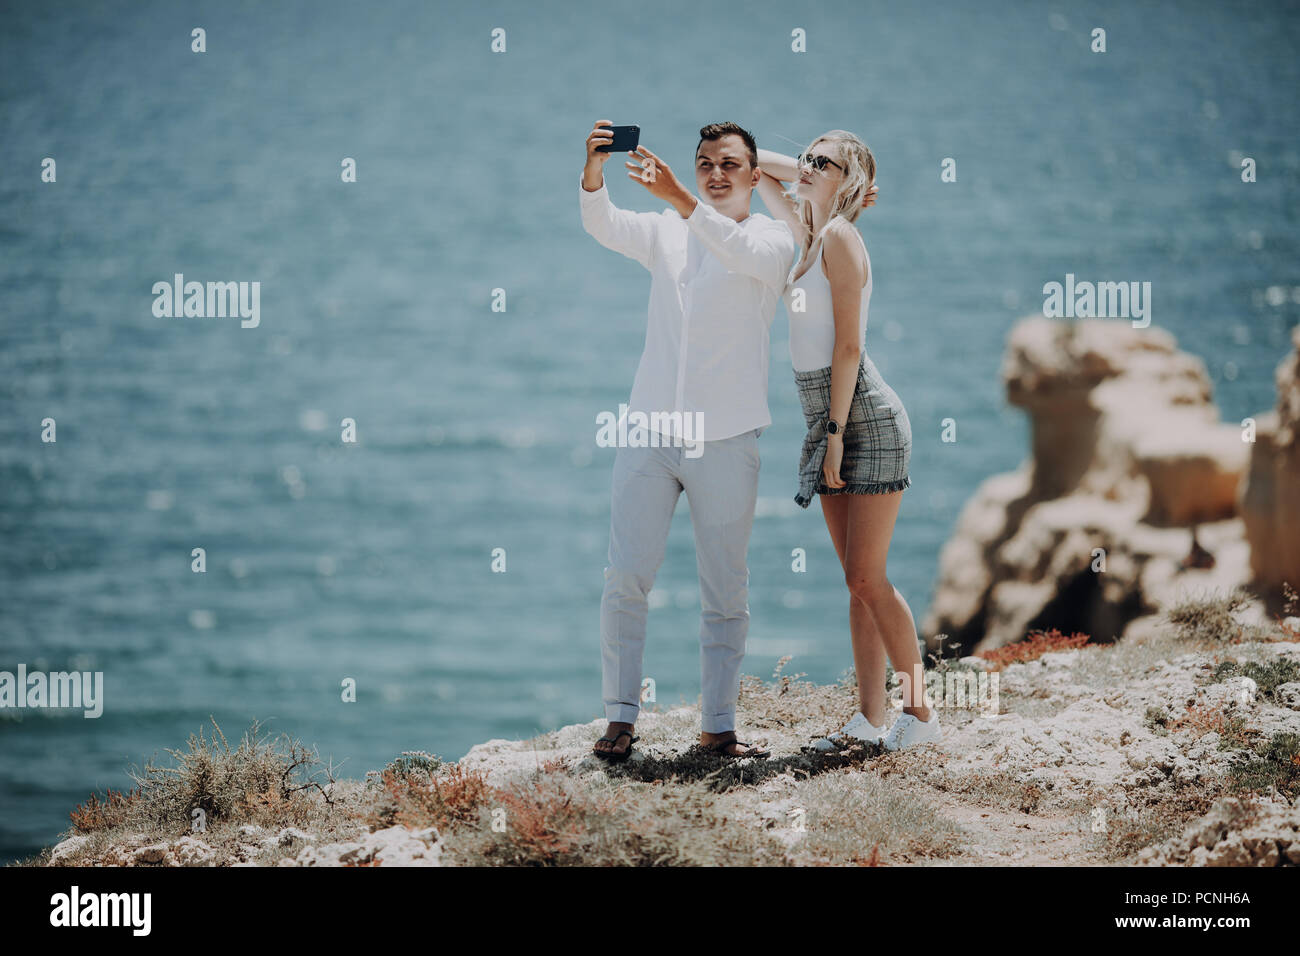 couple taking selfie self portrait photo romantic. Happy lovers, woman and man traveling on vacation - Stock Image